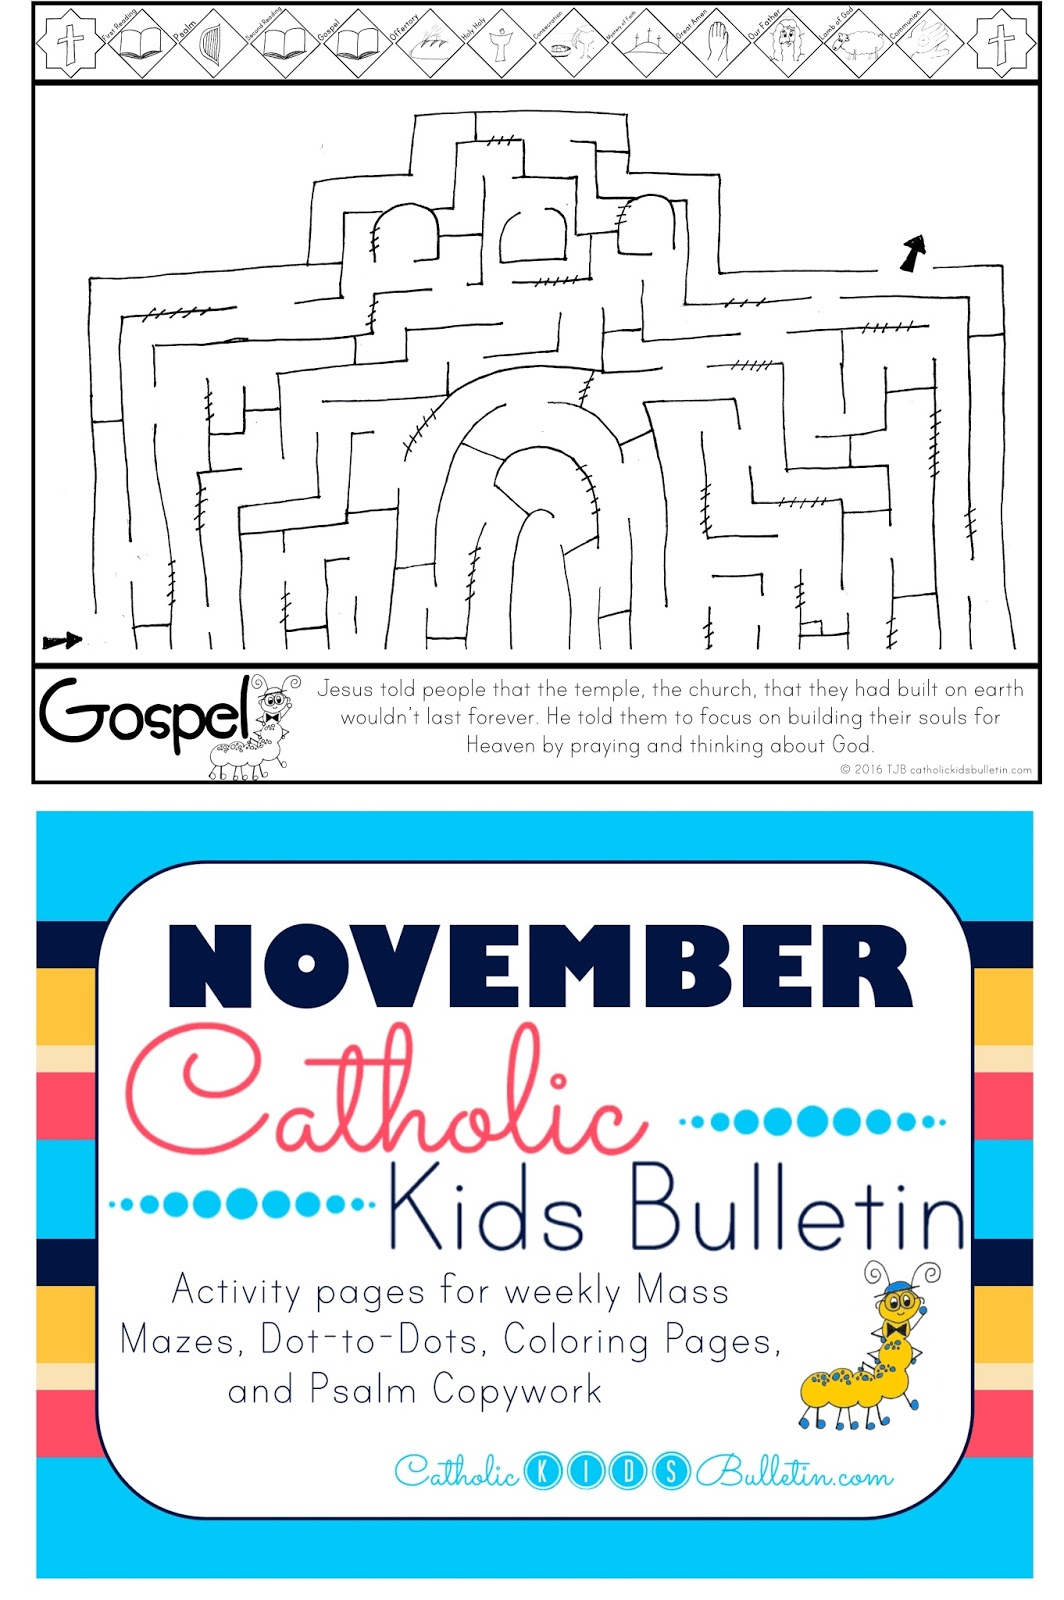 Catholic Kids Bulletin: Weekly Mass Prep for Kids! Luke 21:5-19